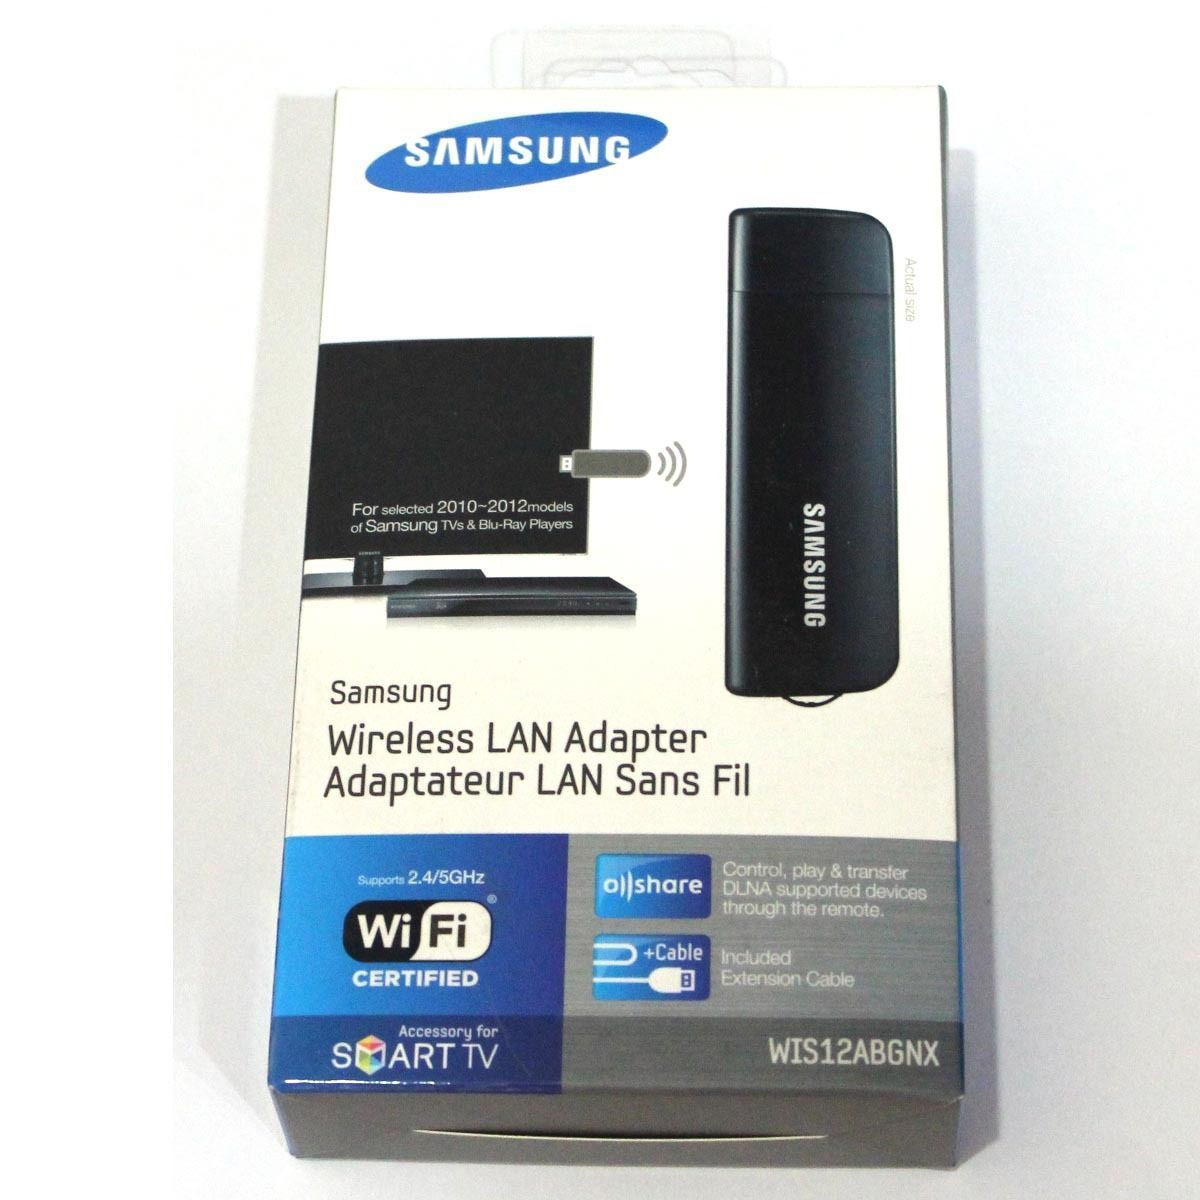 samsung smart tv wireless lan adapter wis12abgnx wifi dongle adaptor internet classifieds. Black Bedroom Furniture Sets. Home Design Ideas